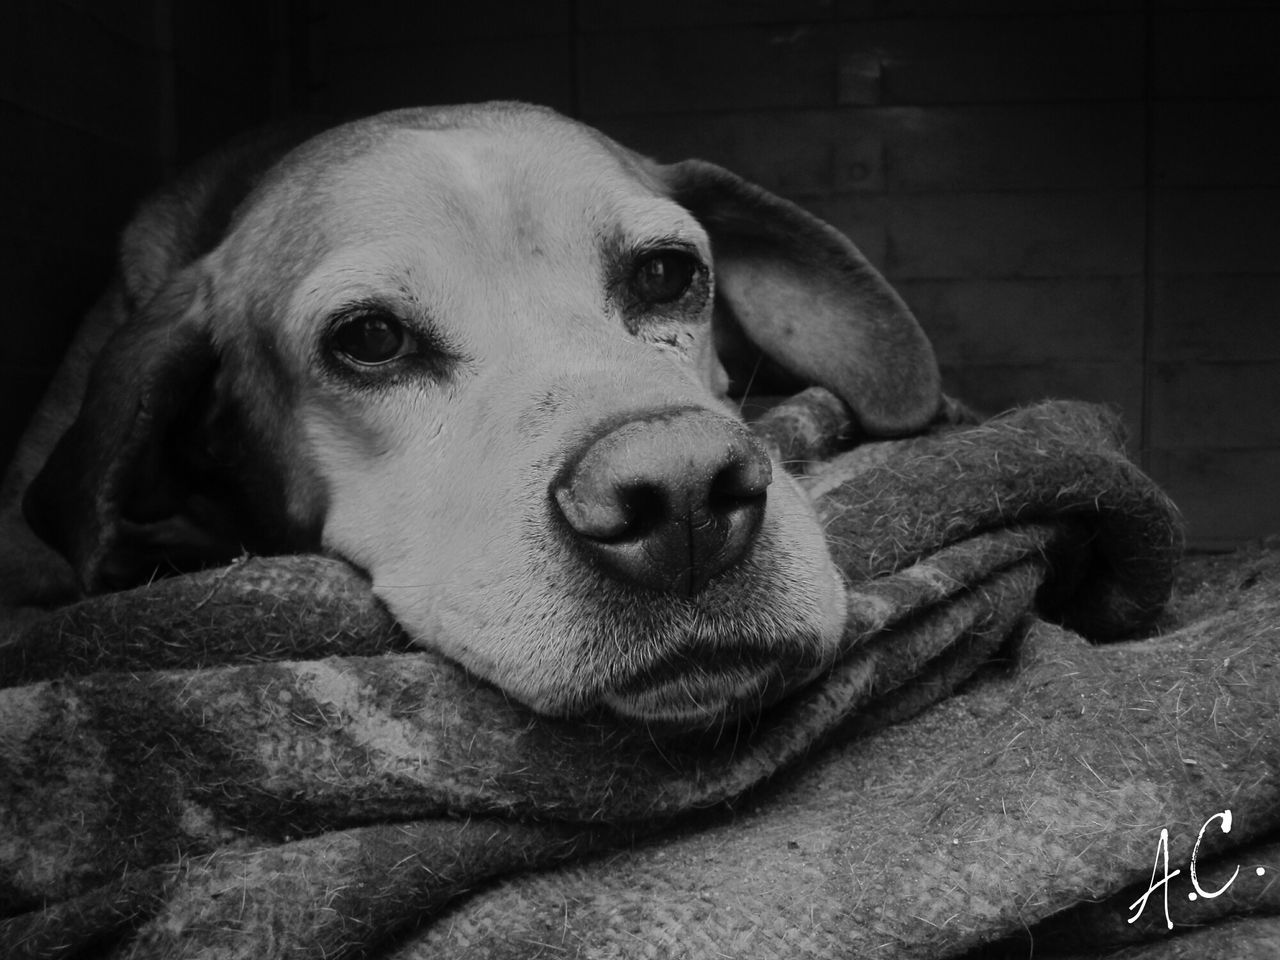 dog, domestic animals, animal themes, pets, one animal, mammal, looking at camera, relaxation, no people, portrait, close-up, indoors, day